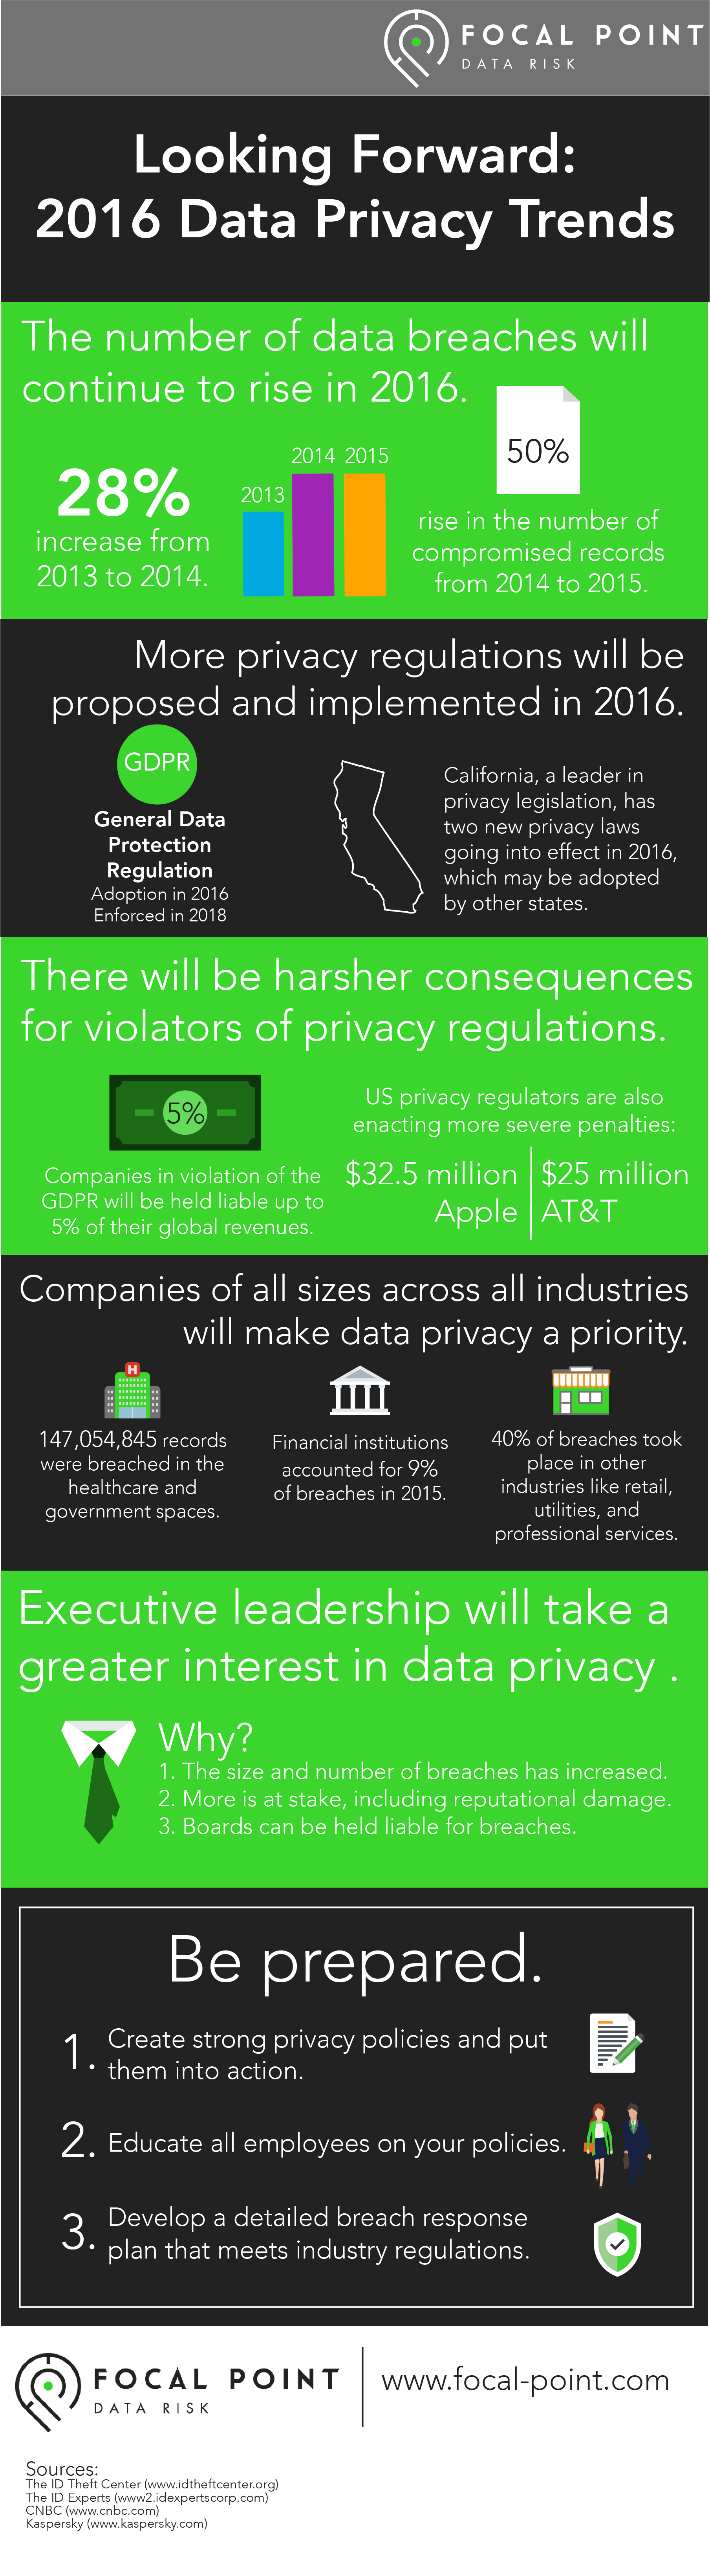 privacy trends 2016 infographic-1.png